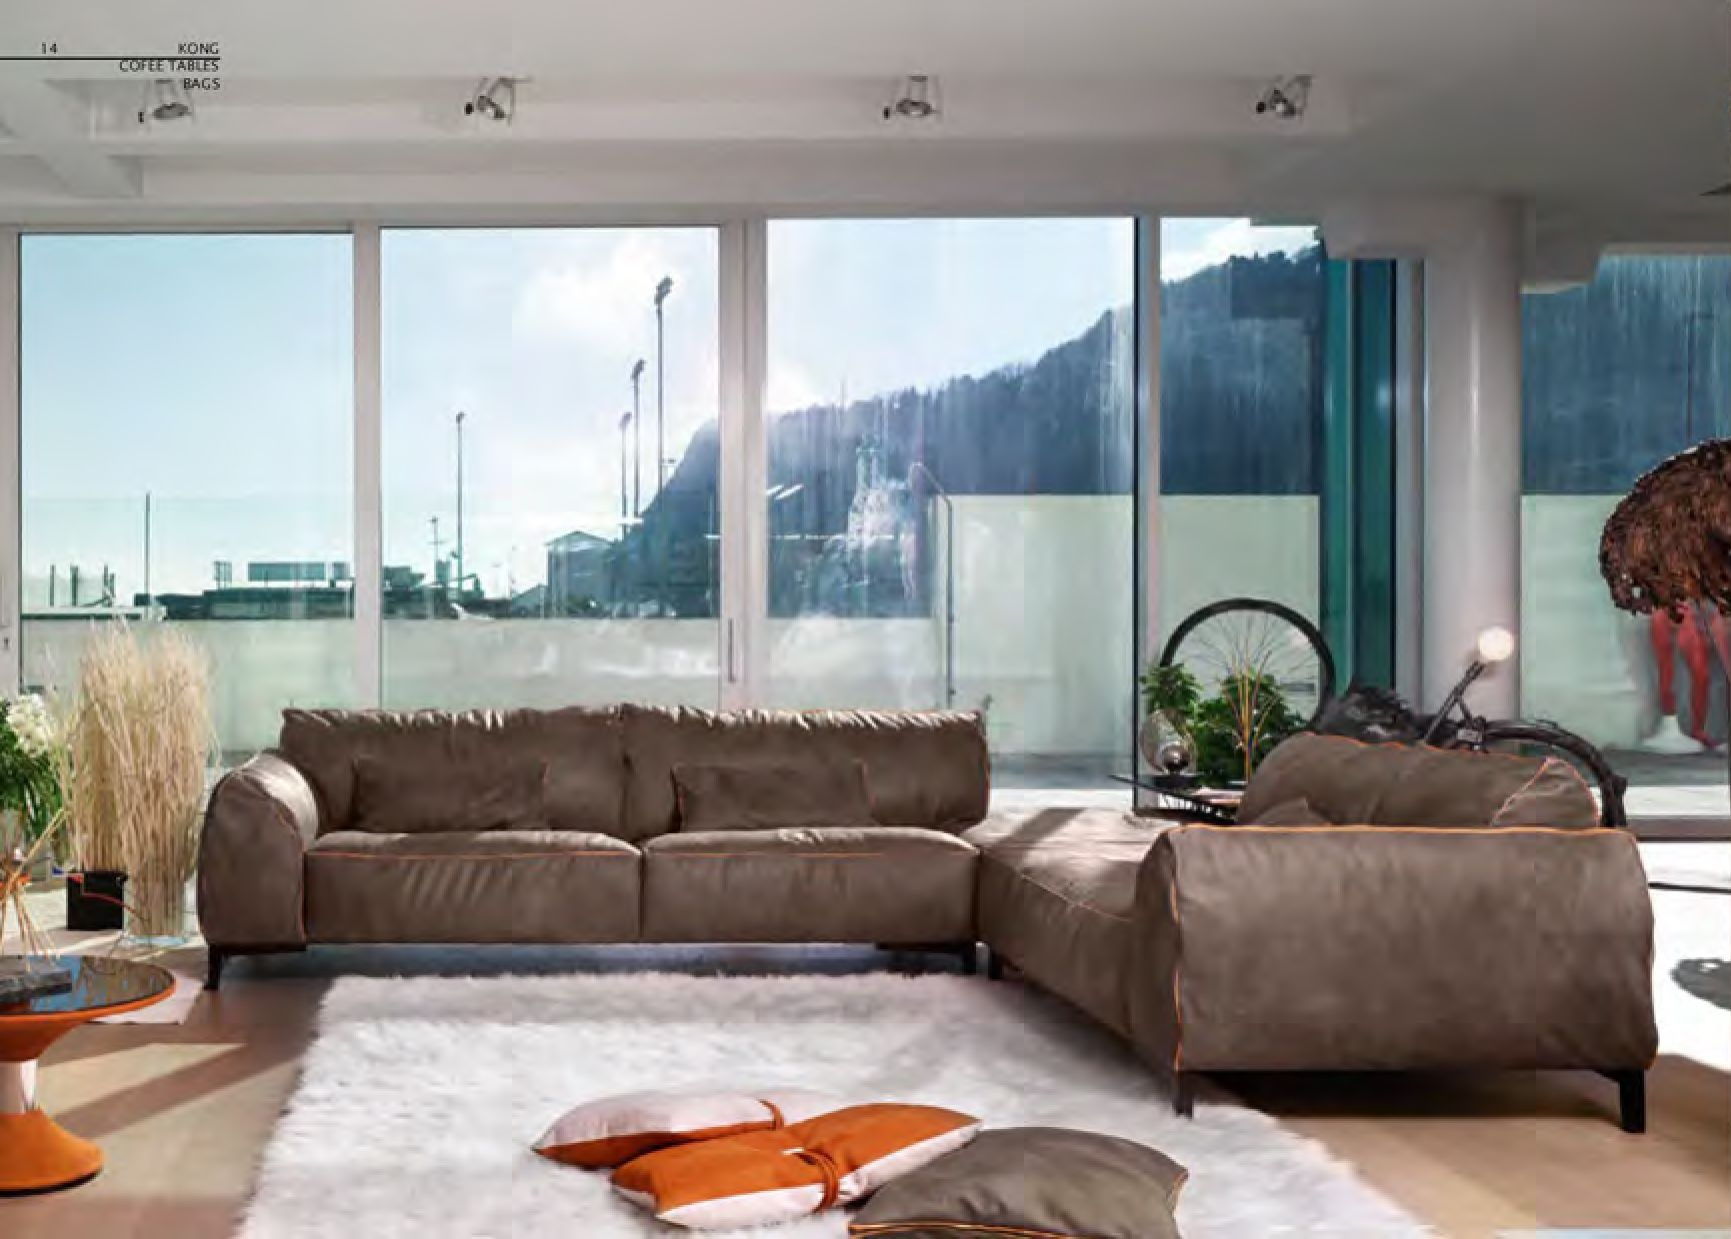 ... are the results of Gamma Arredamentiu0027s handcrafted workmanship and passion for design. Pictured here Gamma Kong Sectional-Cantoni Furniture : cantoni sectional - Sectionals, Sofas & Couches